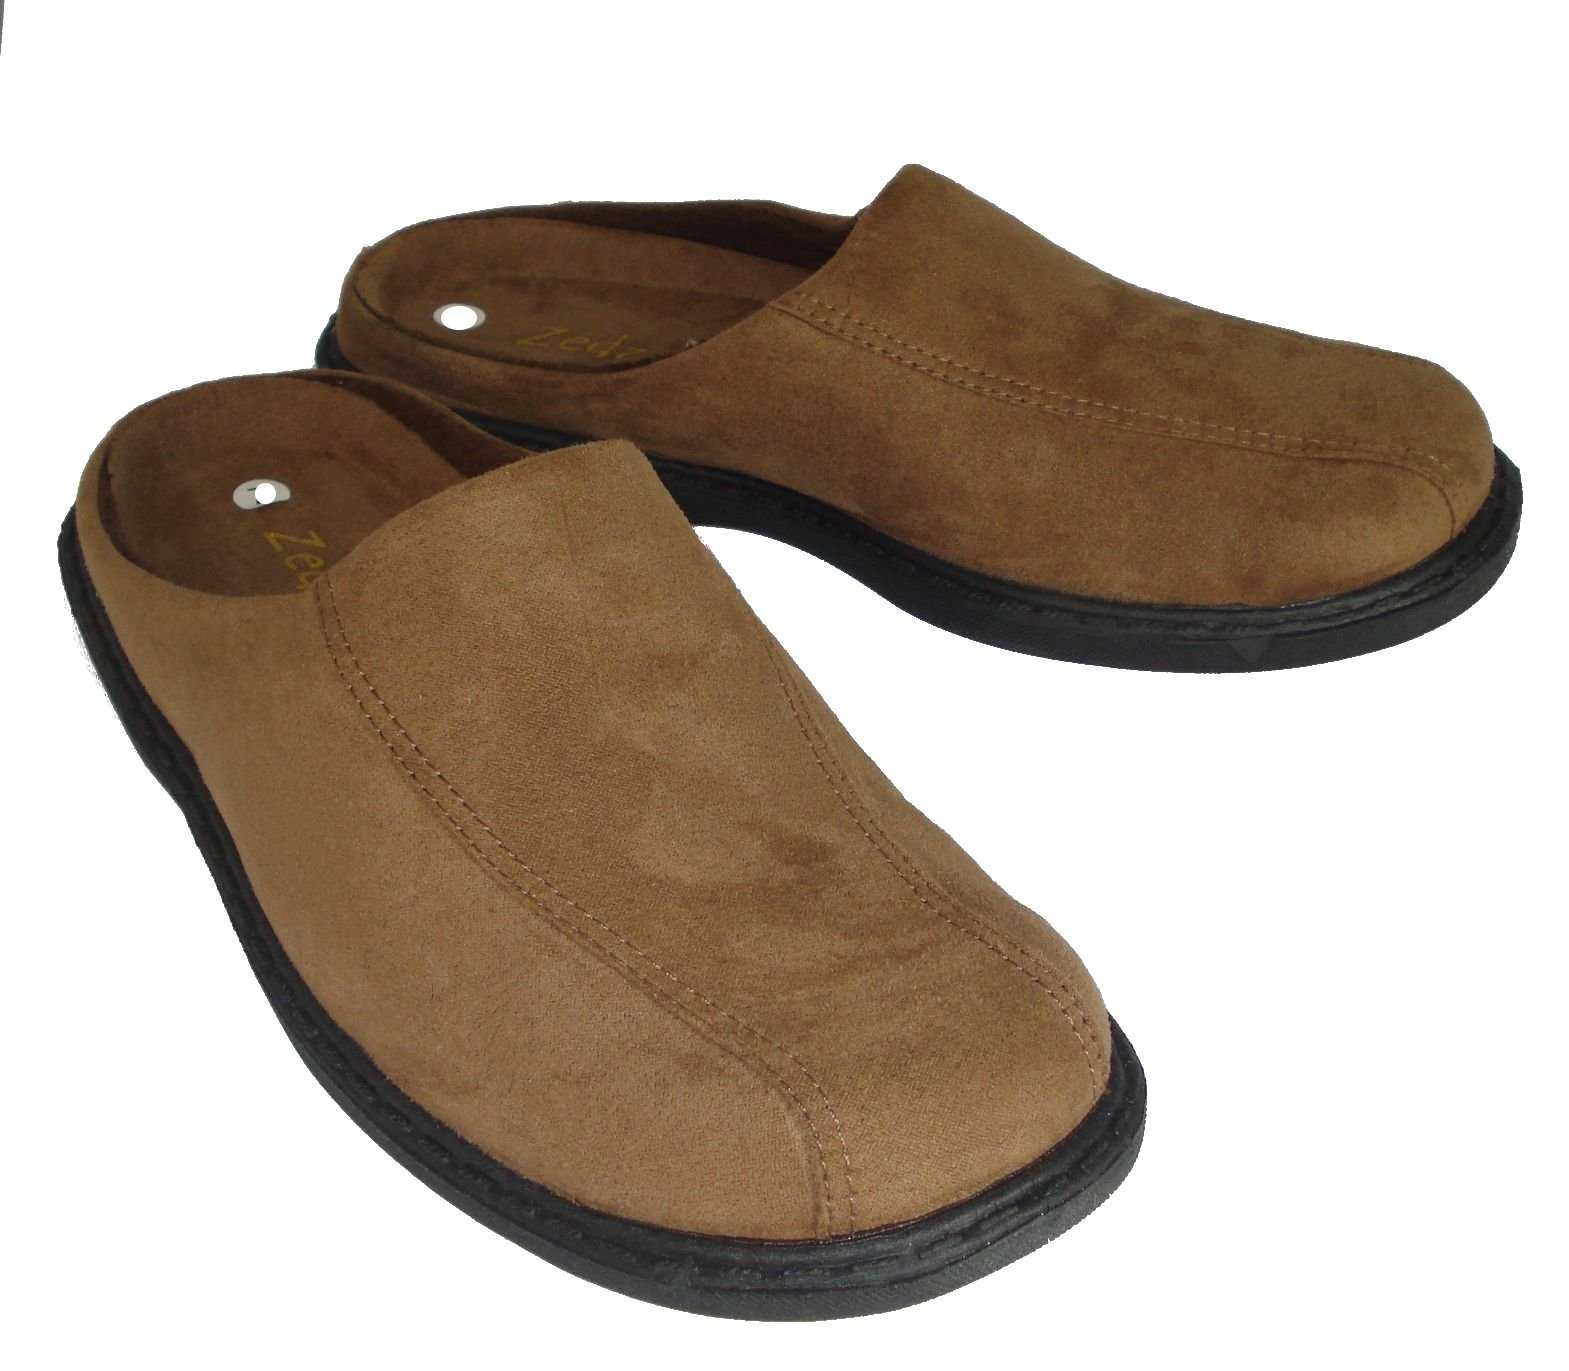 Mens-Zedzzz-Micro-Suede-Mules-Slippers-in-Blue-or-Brown-Sizes-6-to-12